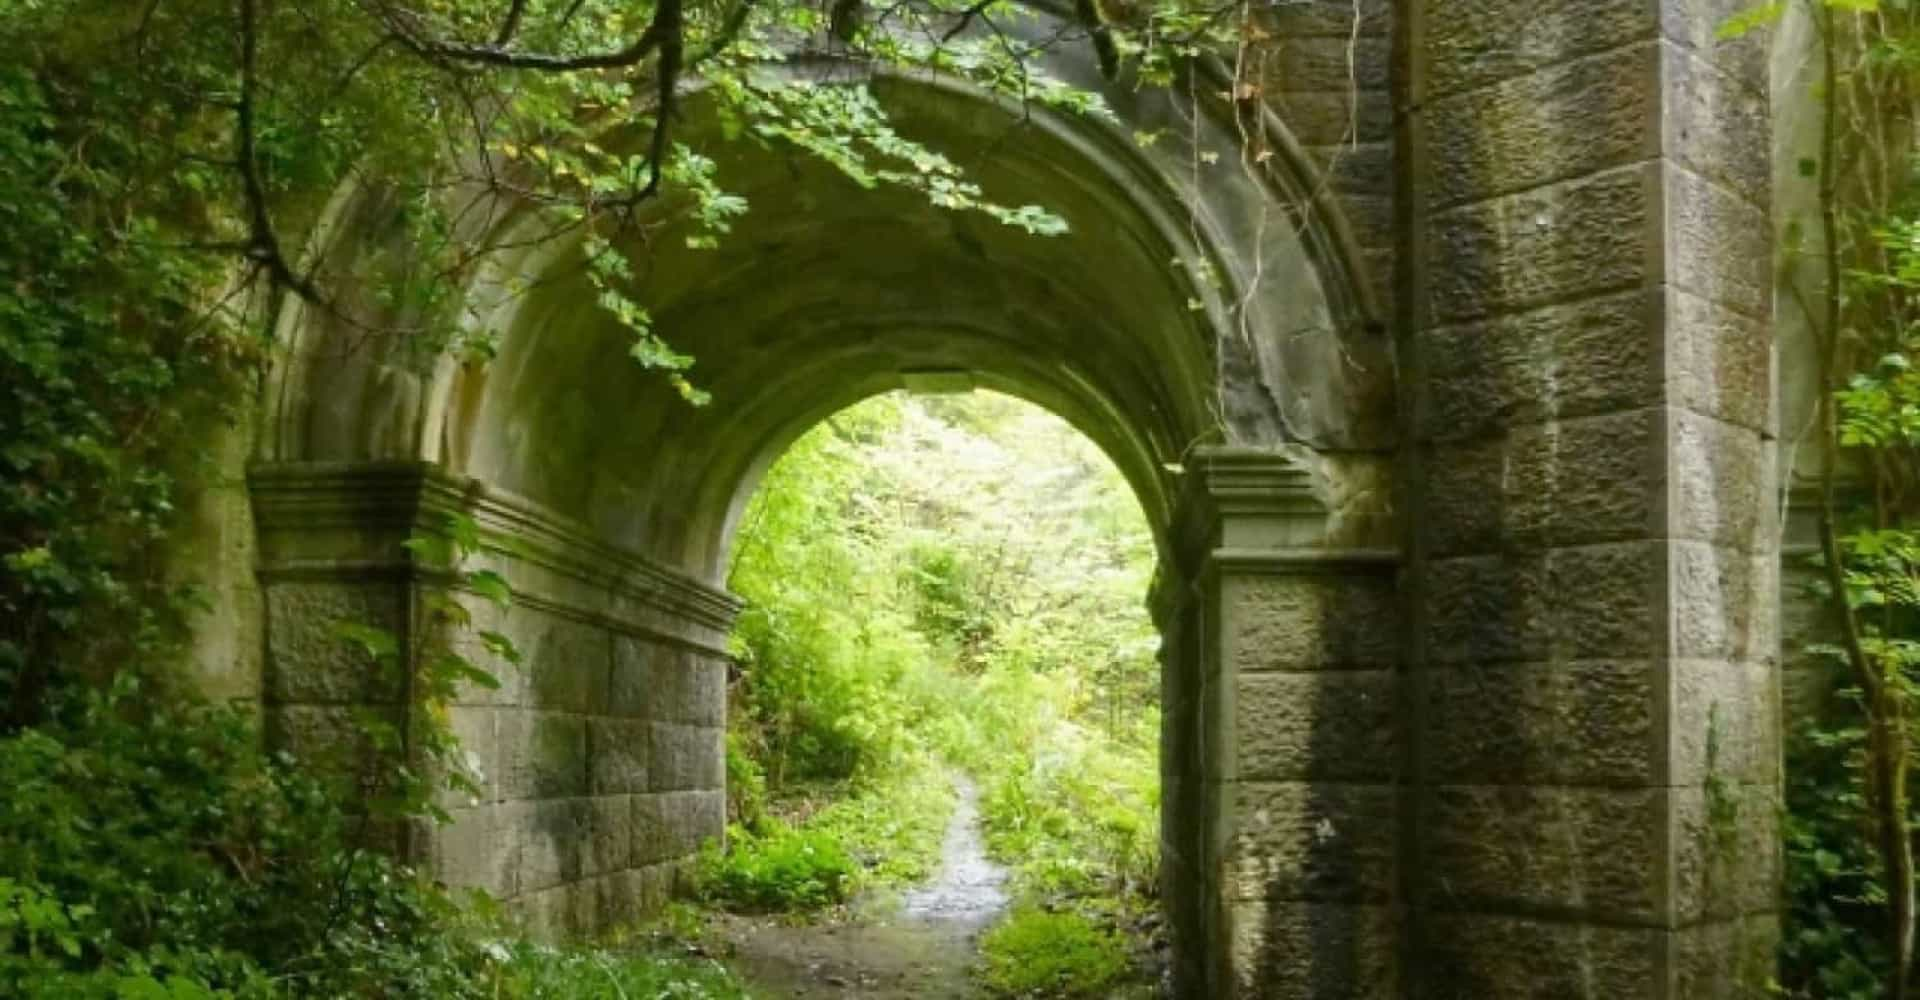 Find out why this bridge in Scotland has a dark secret